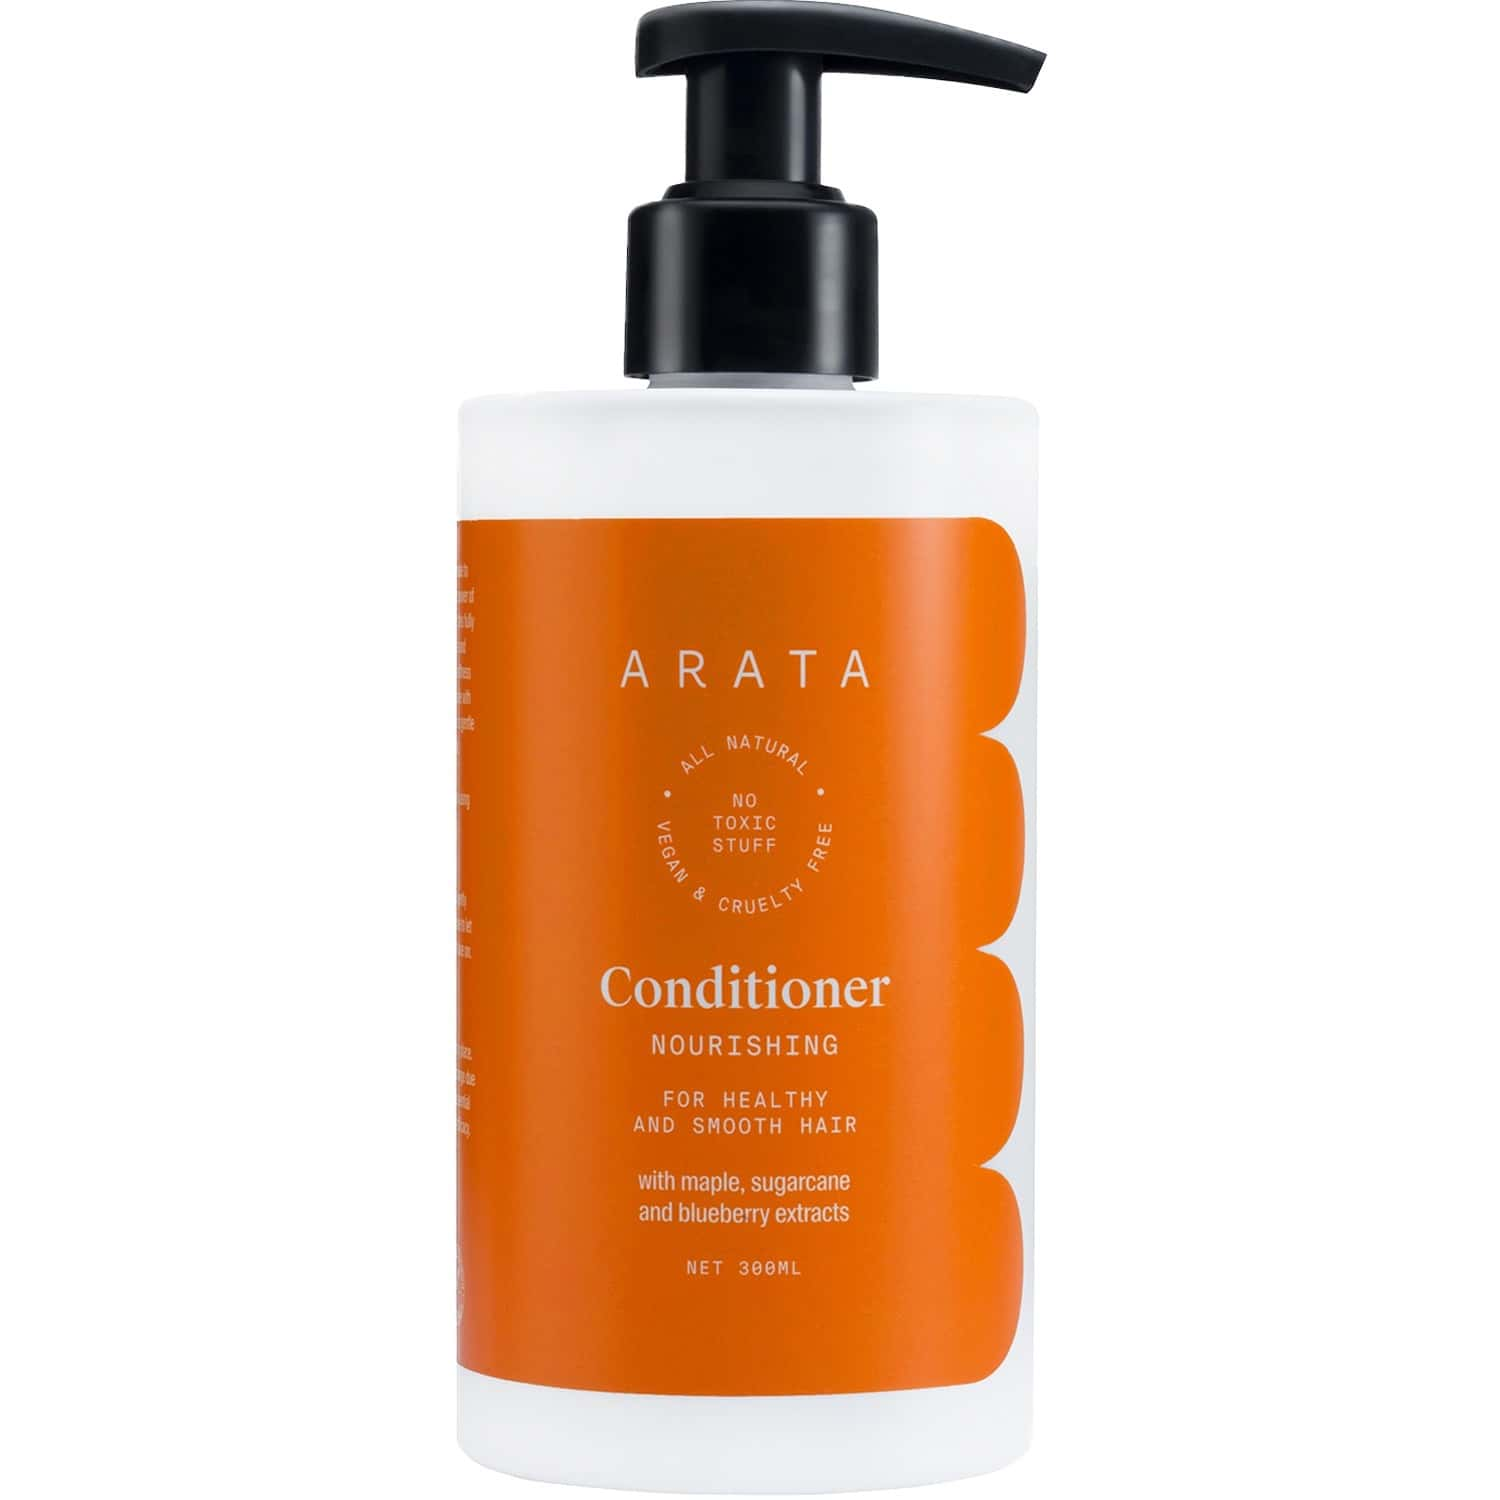 Arata Natural Nourishing Hair Conditioner With Maple, Sugarcane & Blueberry Extracts For Women & Men   All-natural, Vegan & Cruelty-free   For Healthy & Smooth Hair - 300 Ml